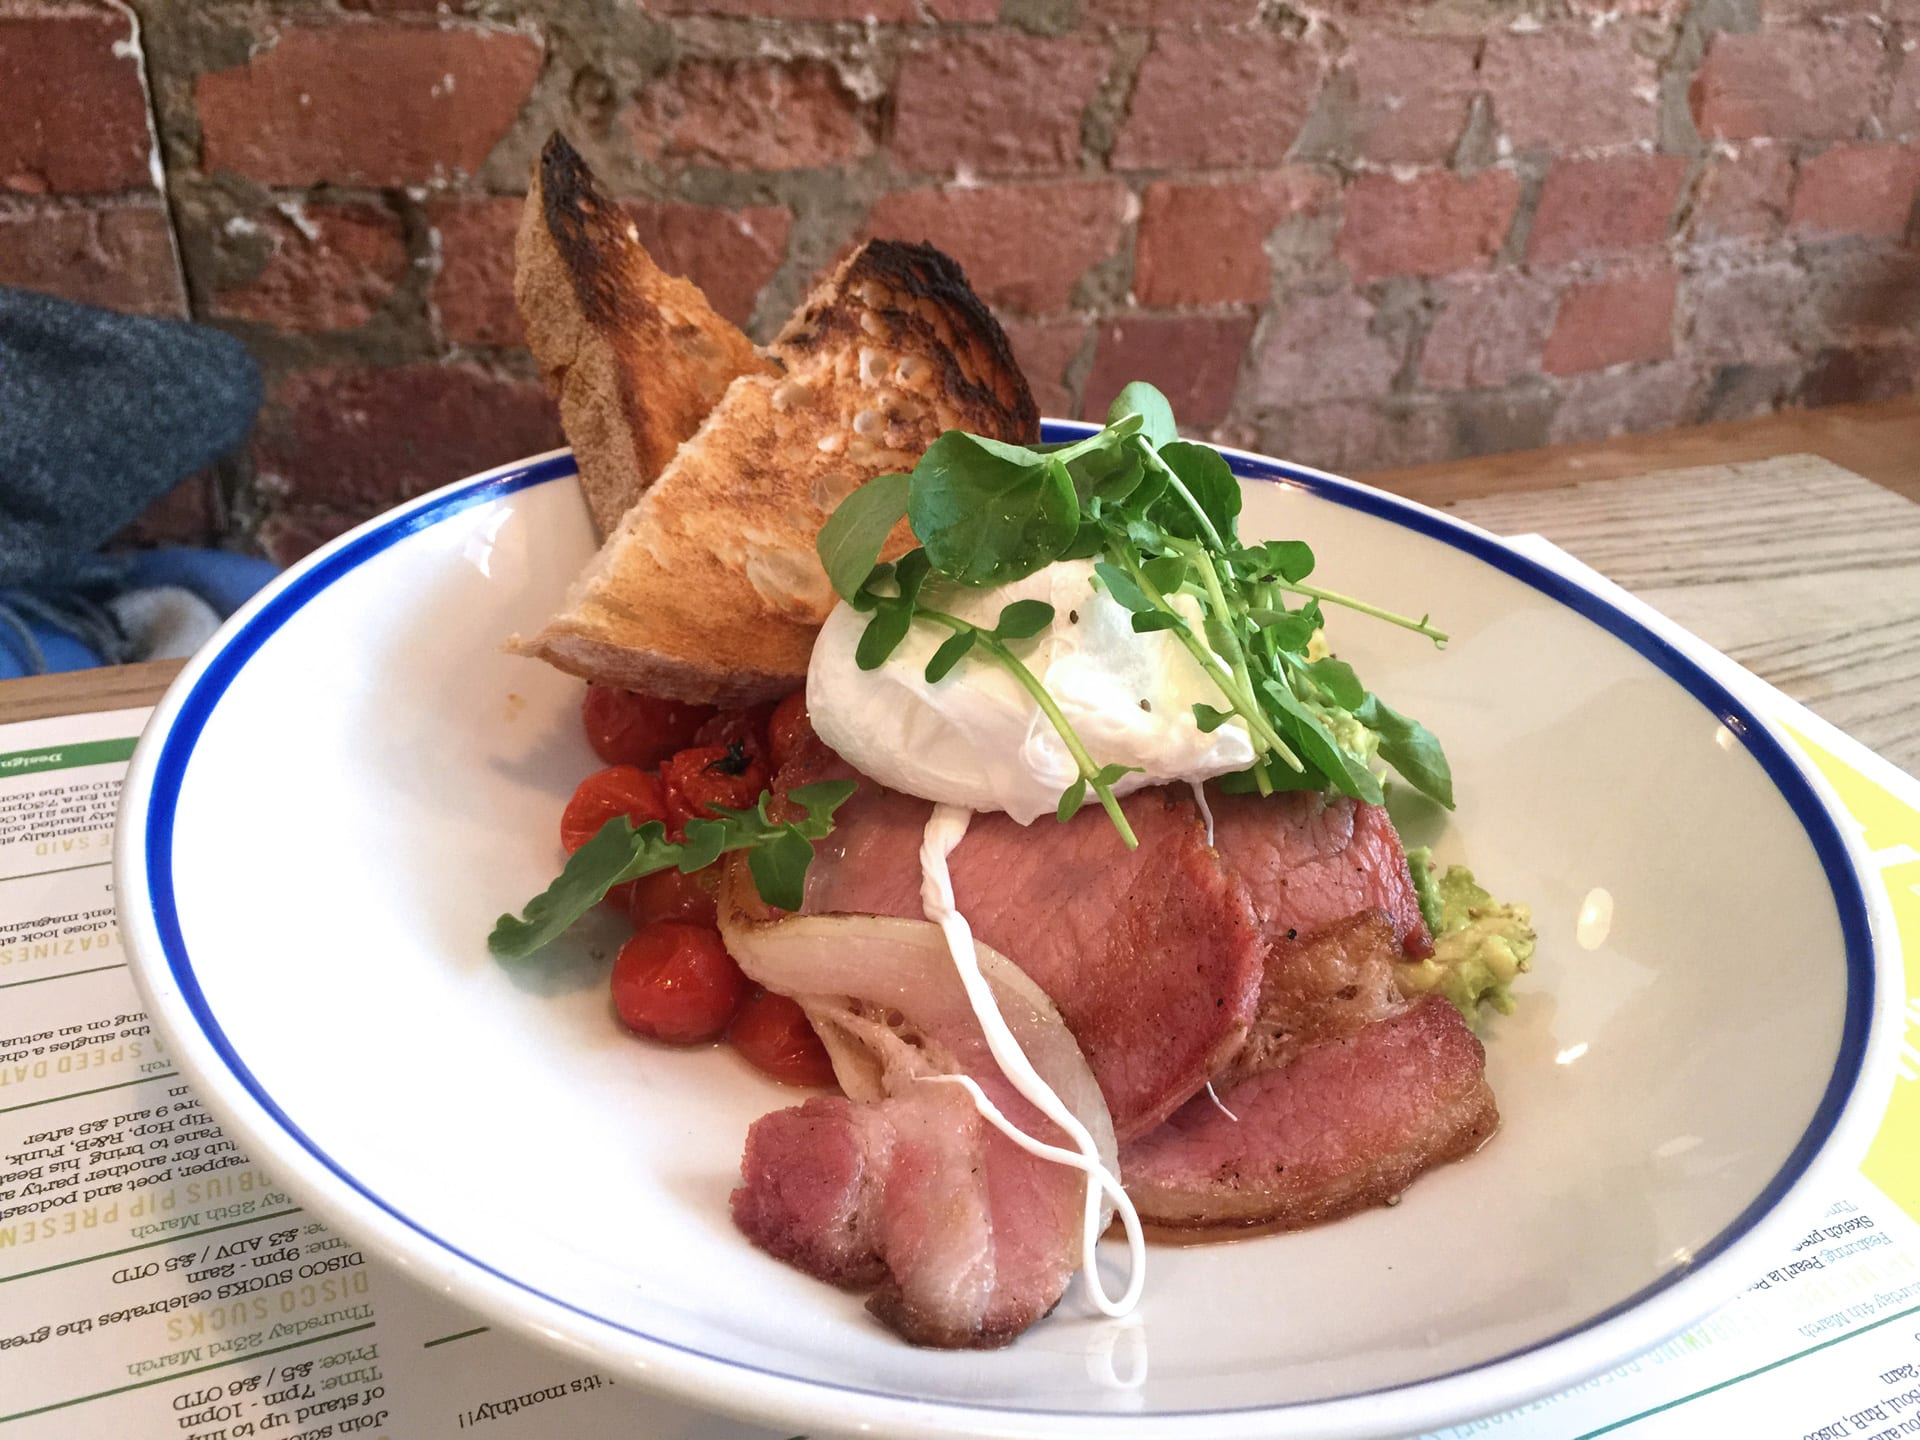 Desayuno en Shoreditch: The Book Club